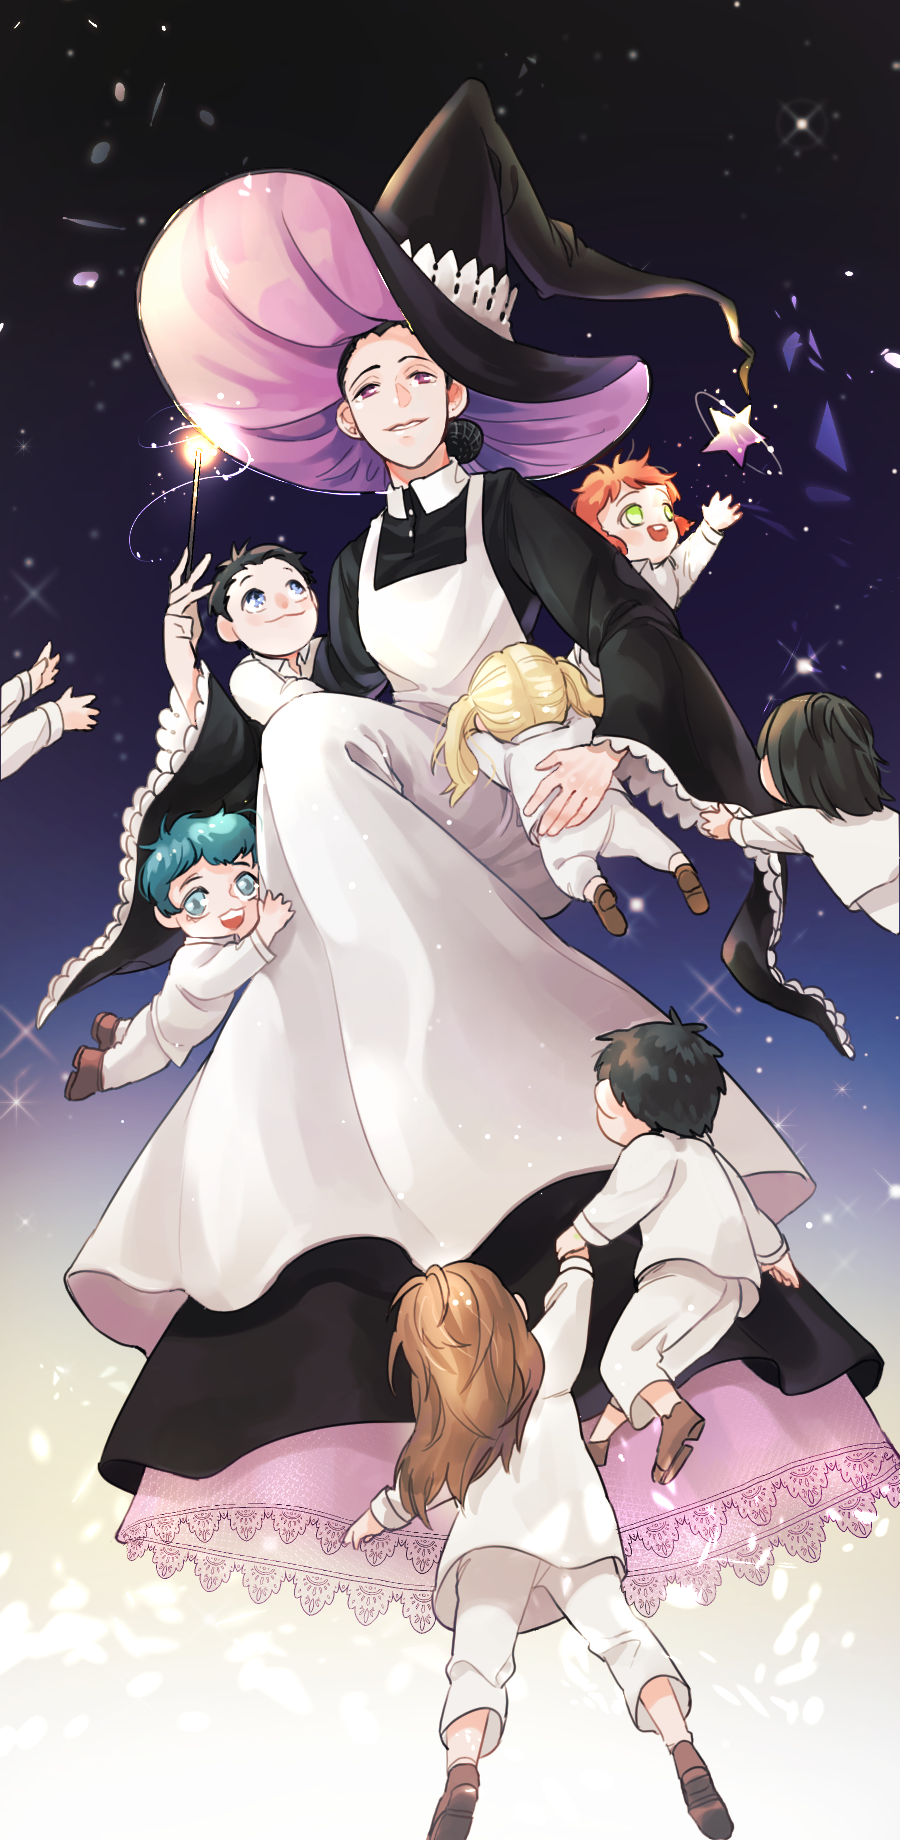 3boys 4girls :d apron aqua_hair black_hair blonde_hair brown_footwear brown_hair child emma_(yakusoku_no_neverland) gradient gradient_background green_eyes hat highres holding holding_wand isabella_(yakusoku_no_neverland) multiple_boys multiple_girls nawooteto open_mouth orange_hair outstretched_arms pink_eyes short_twintails smile star twintails wand wide_sleeves witch_hat yakusoku_no_neverland younger